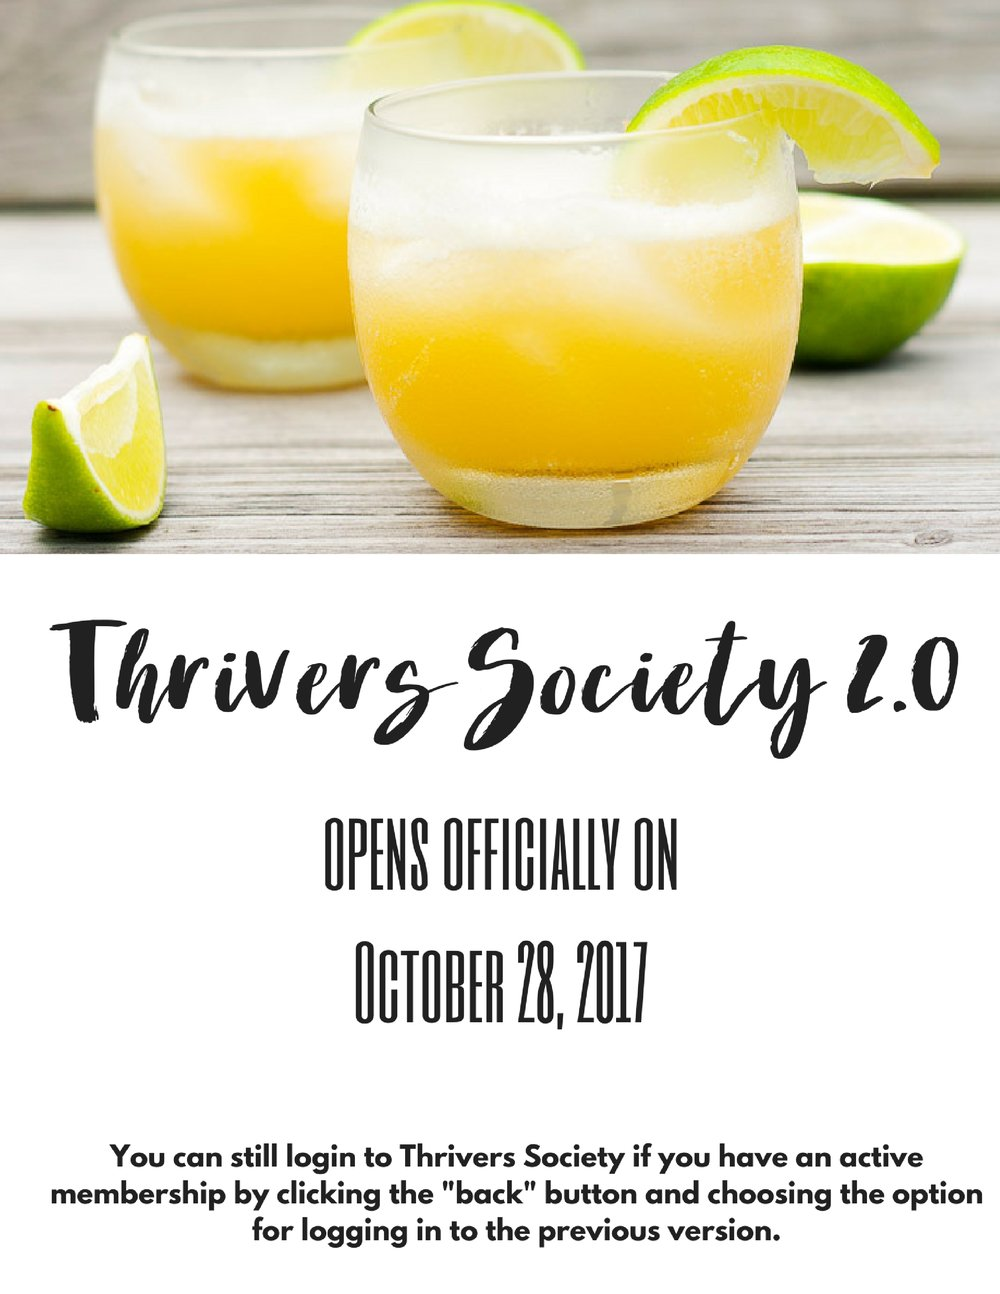 Thrivers Society 2.0 opens officially on October 28, 2017.jpg